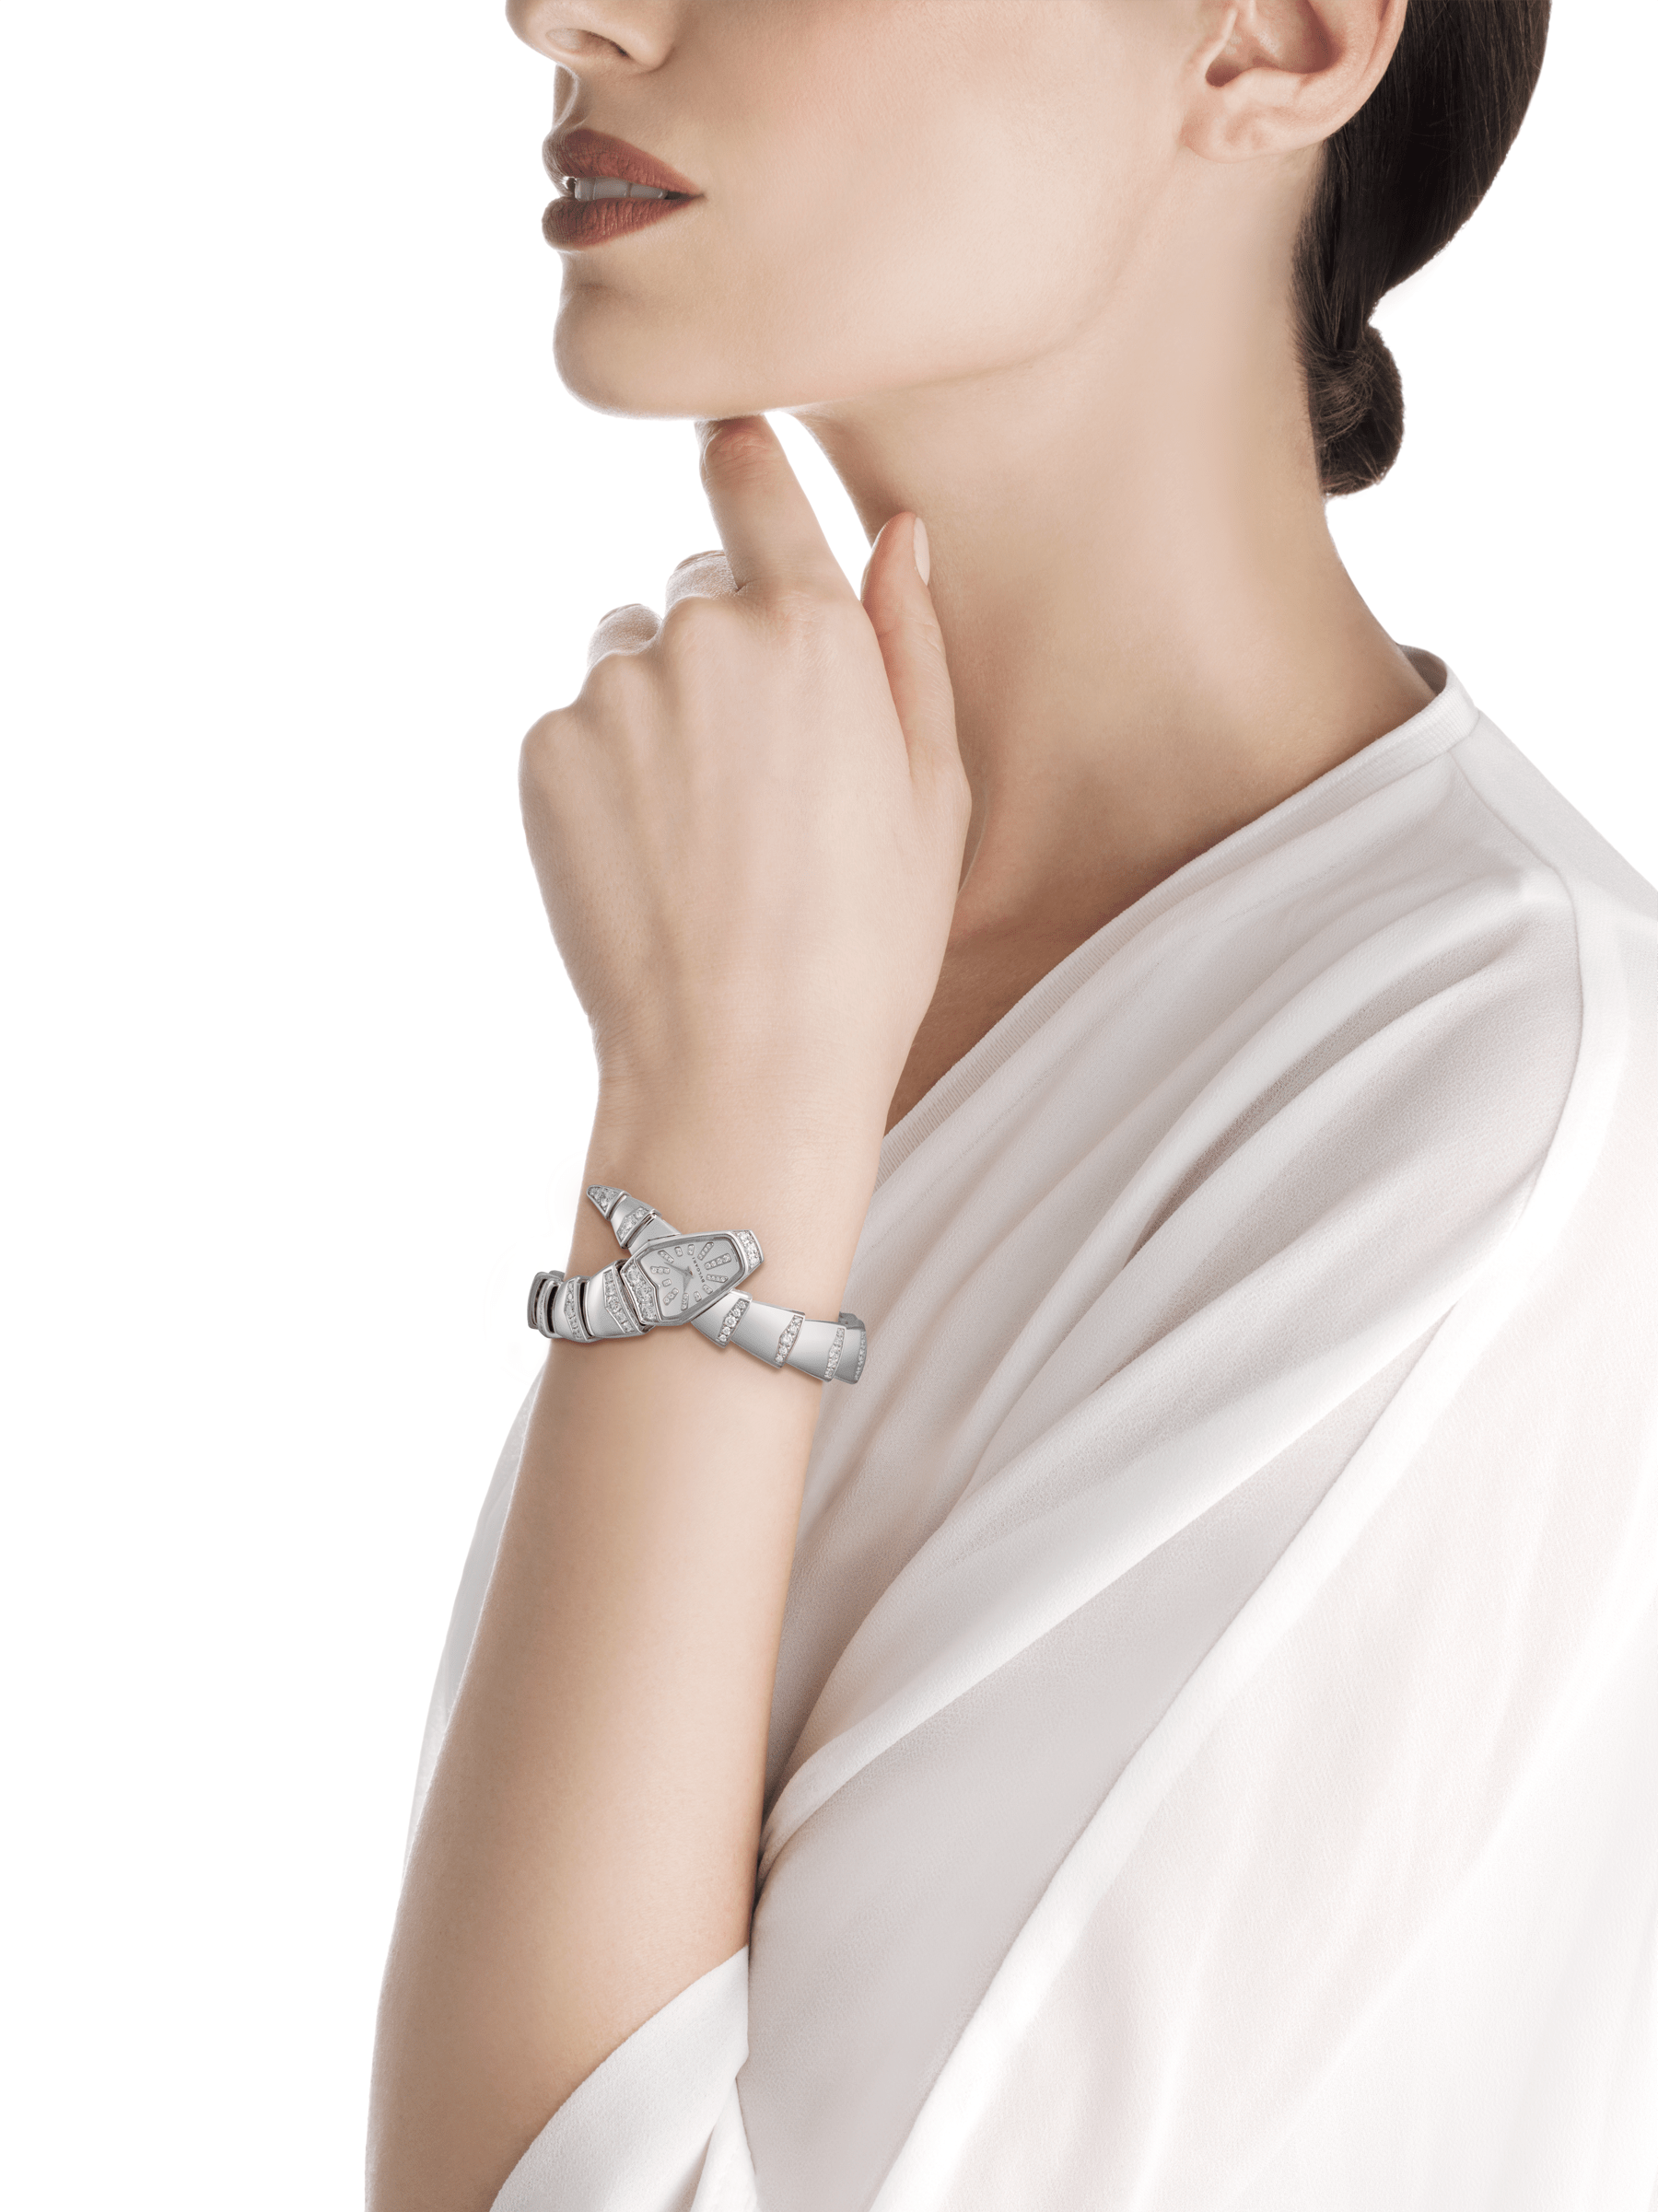 Serpenti Jewellery Watch in 18 kt white gold case and single spiral bracelet, both set with brilliant cut diamonds, white mother-of-pearl dial and diamond indexes. 102366 image 2